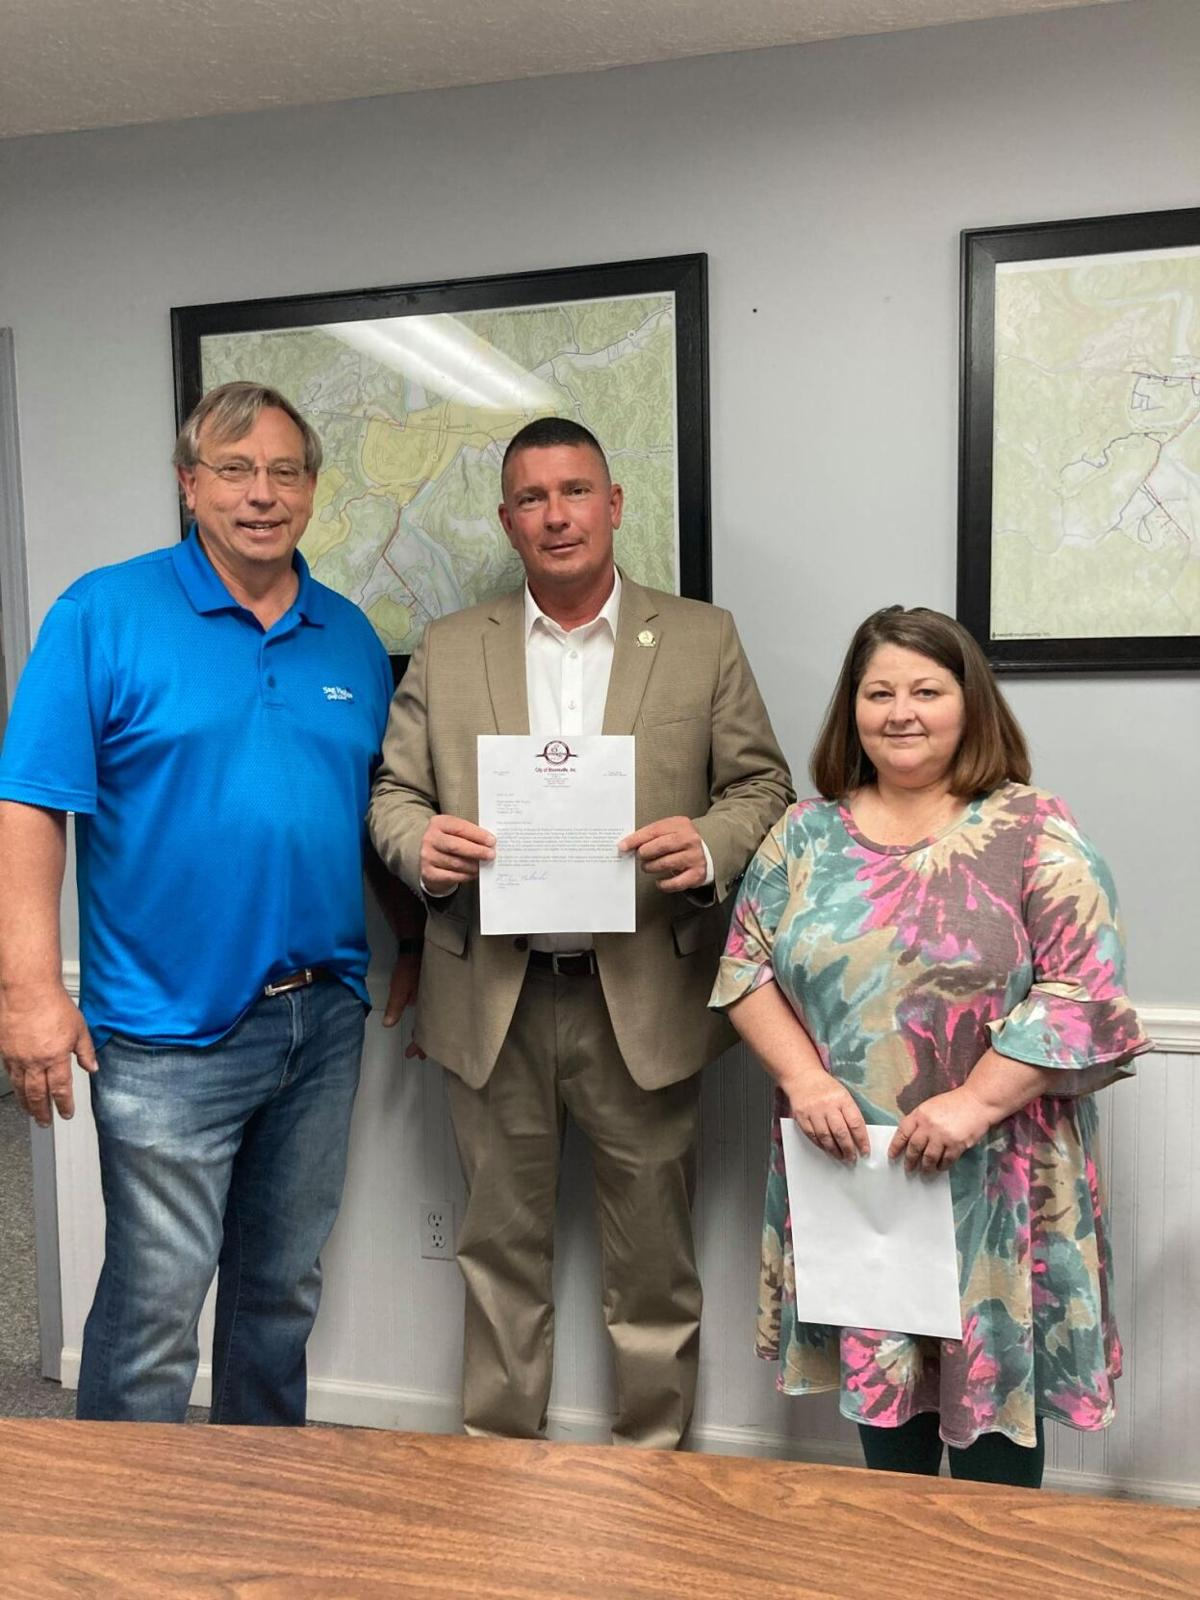 Fiscal Court Donates Land in Order to Help Get Funding for a Local ATC